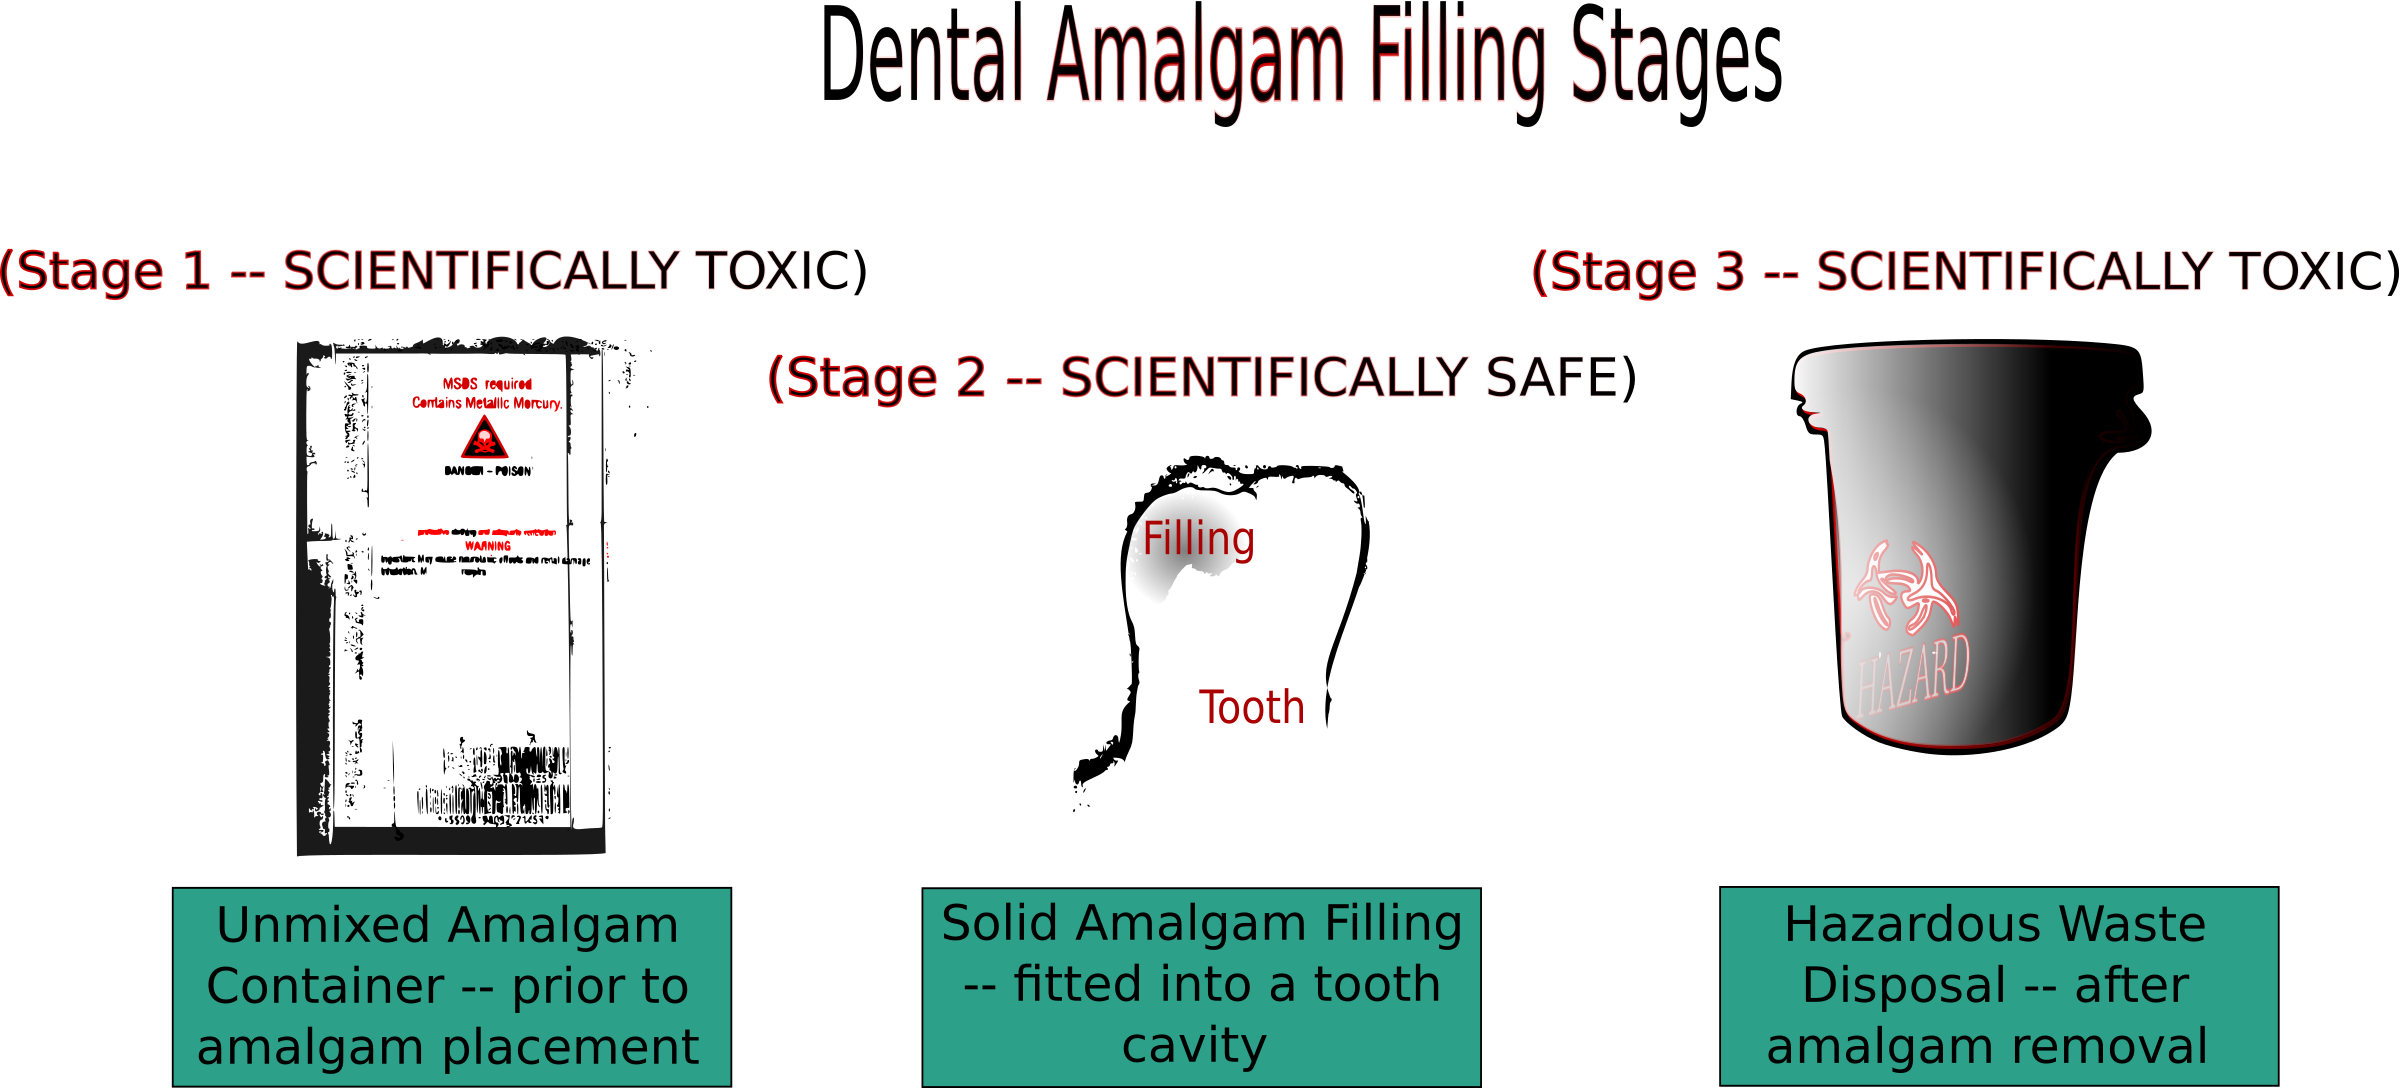 Dental Amalgam Filling Stages by cibo00